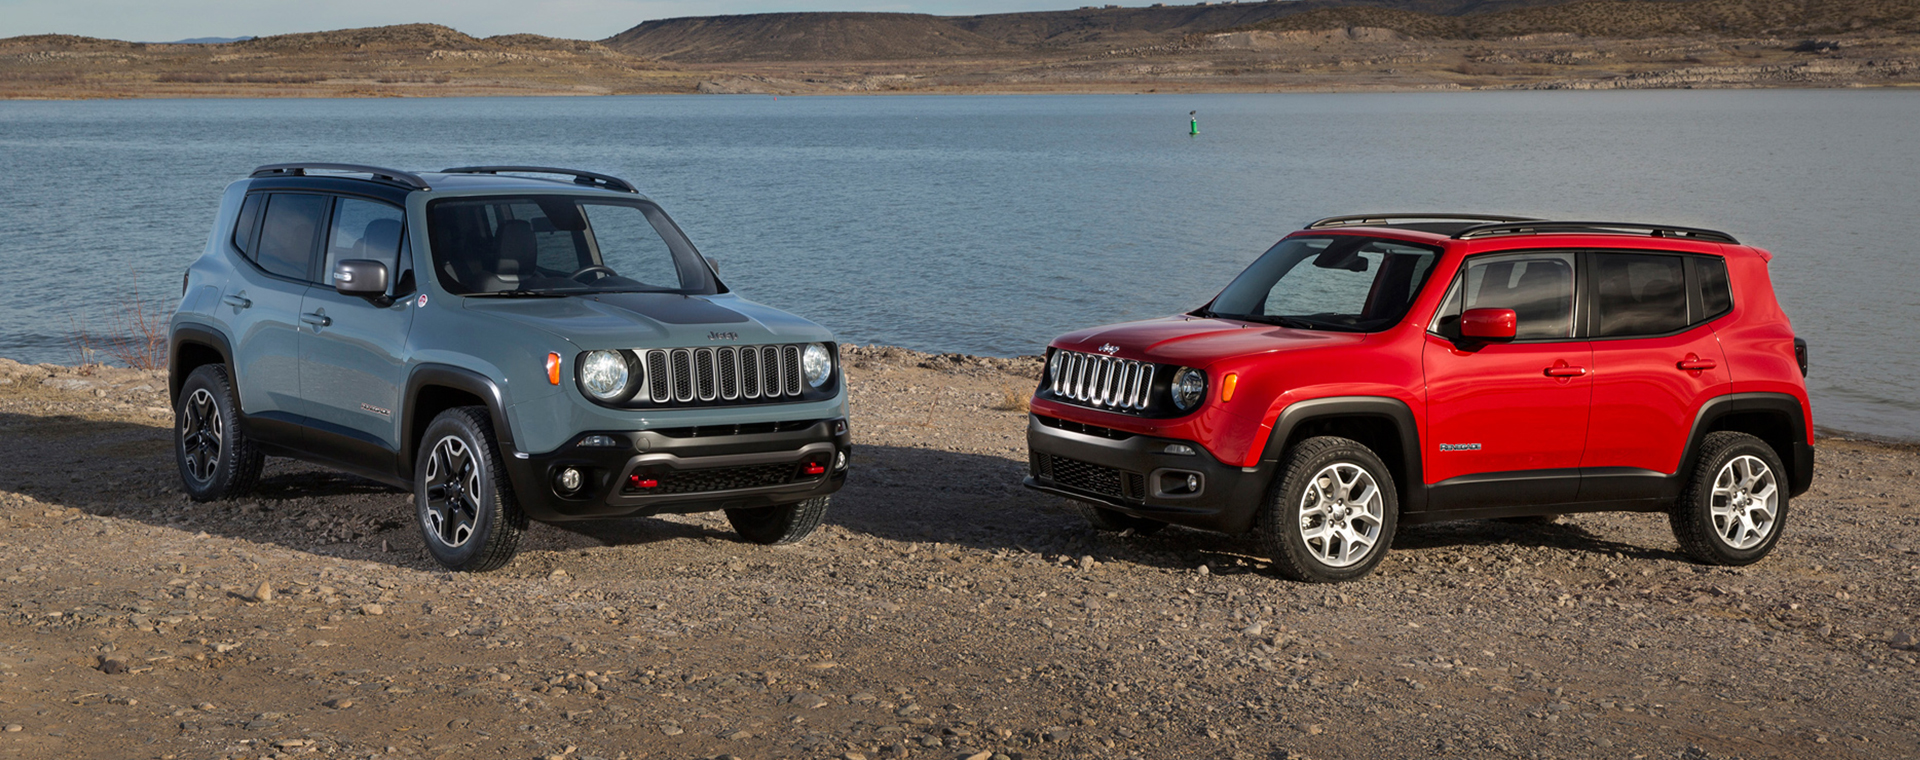 New Renegade inventory at Quirk Chrysler Jeep